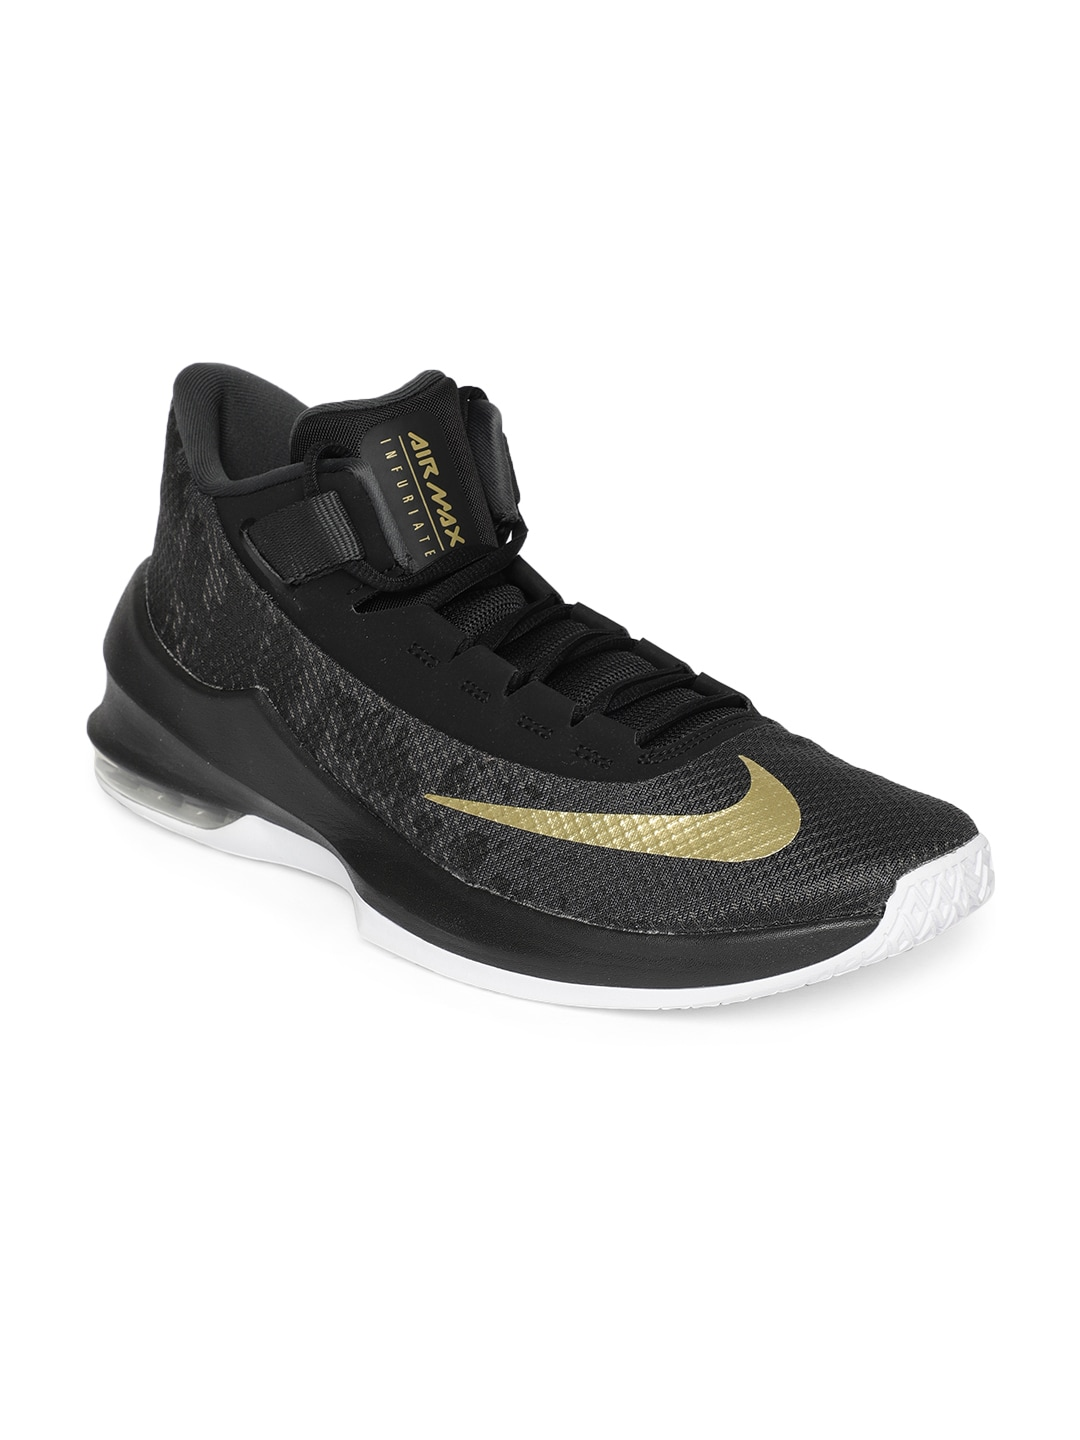 timeless design 3343a b0f57 Nike Shoes - Buy Nike Shoes for Men, Women   Kids Online   Myntra